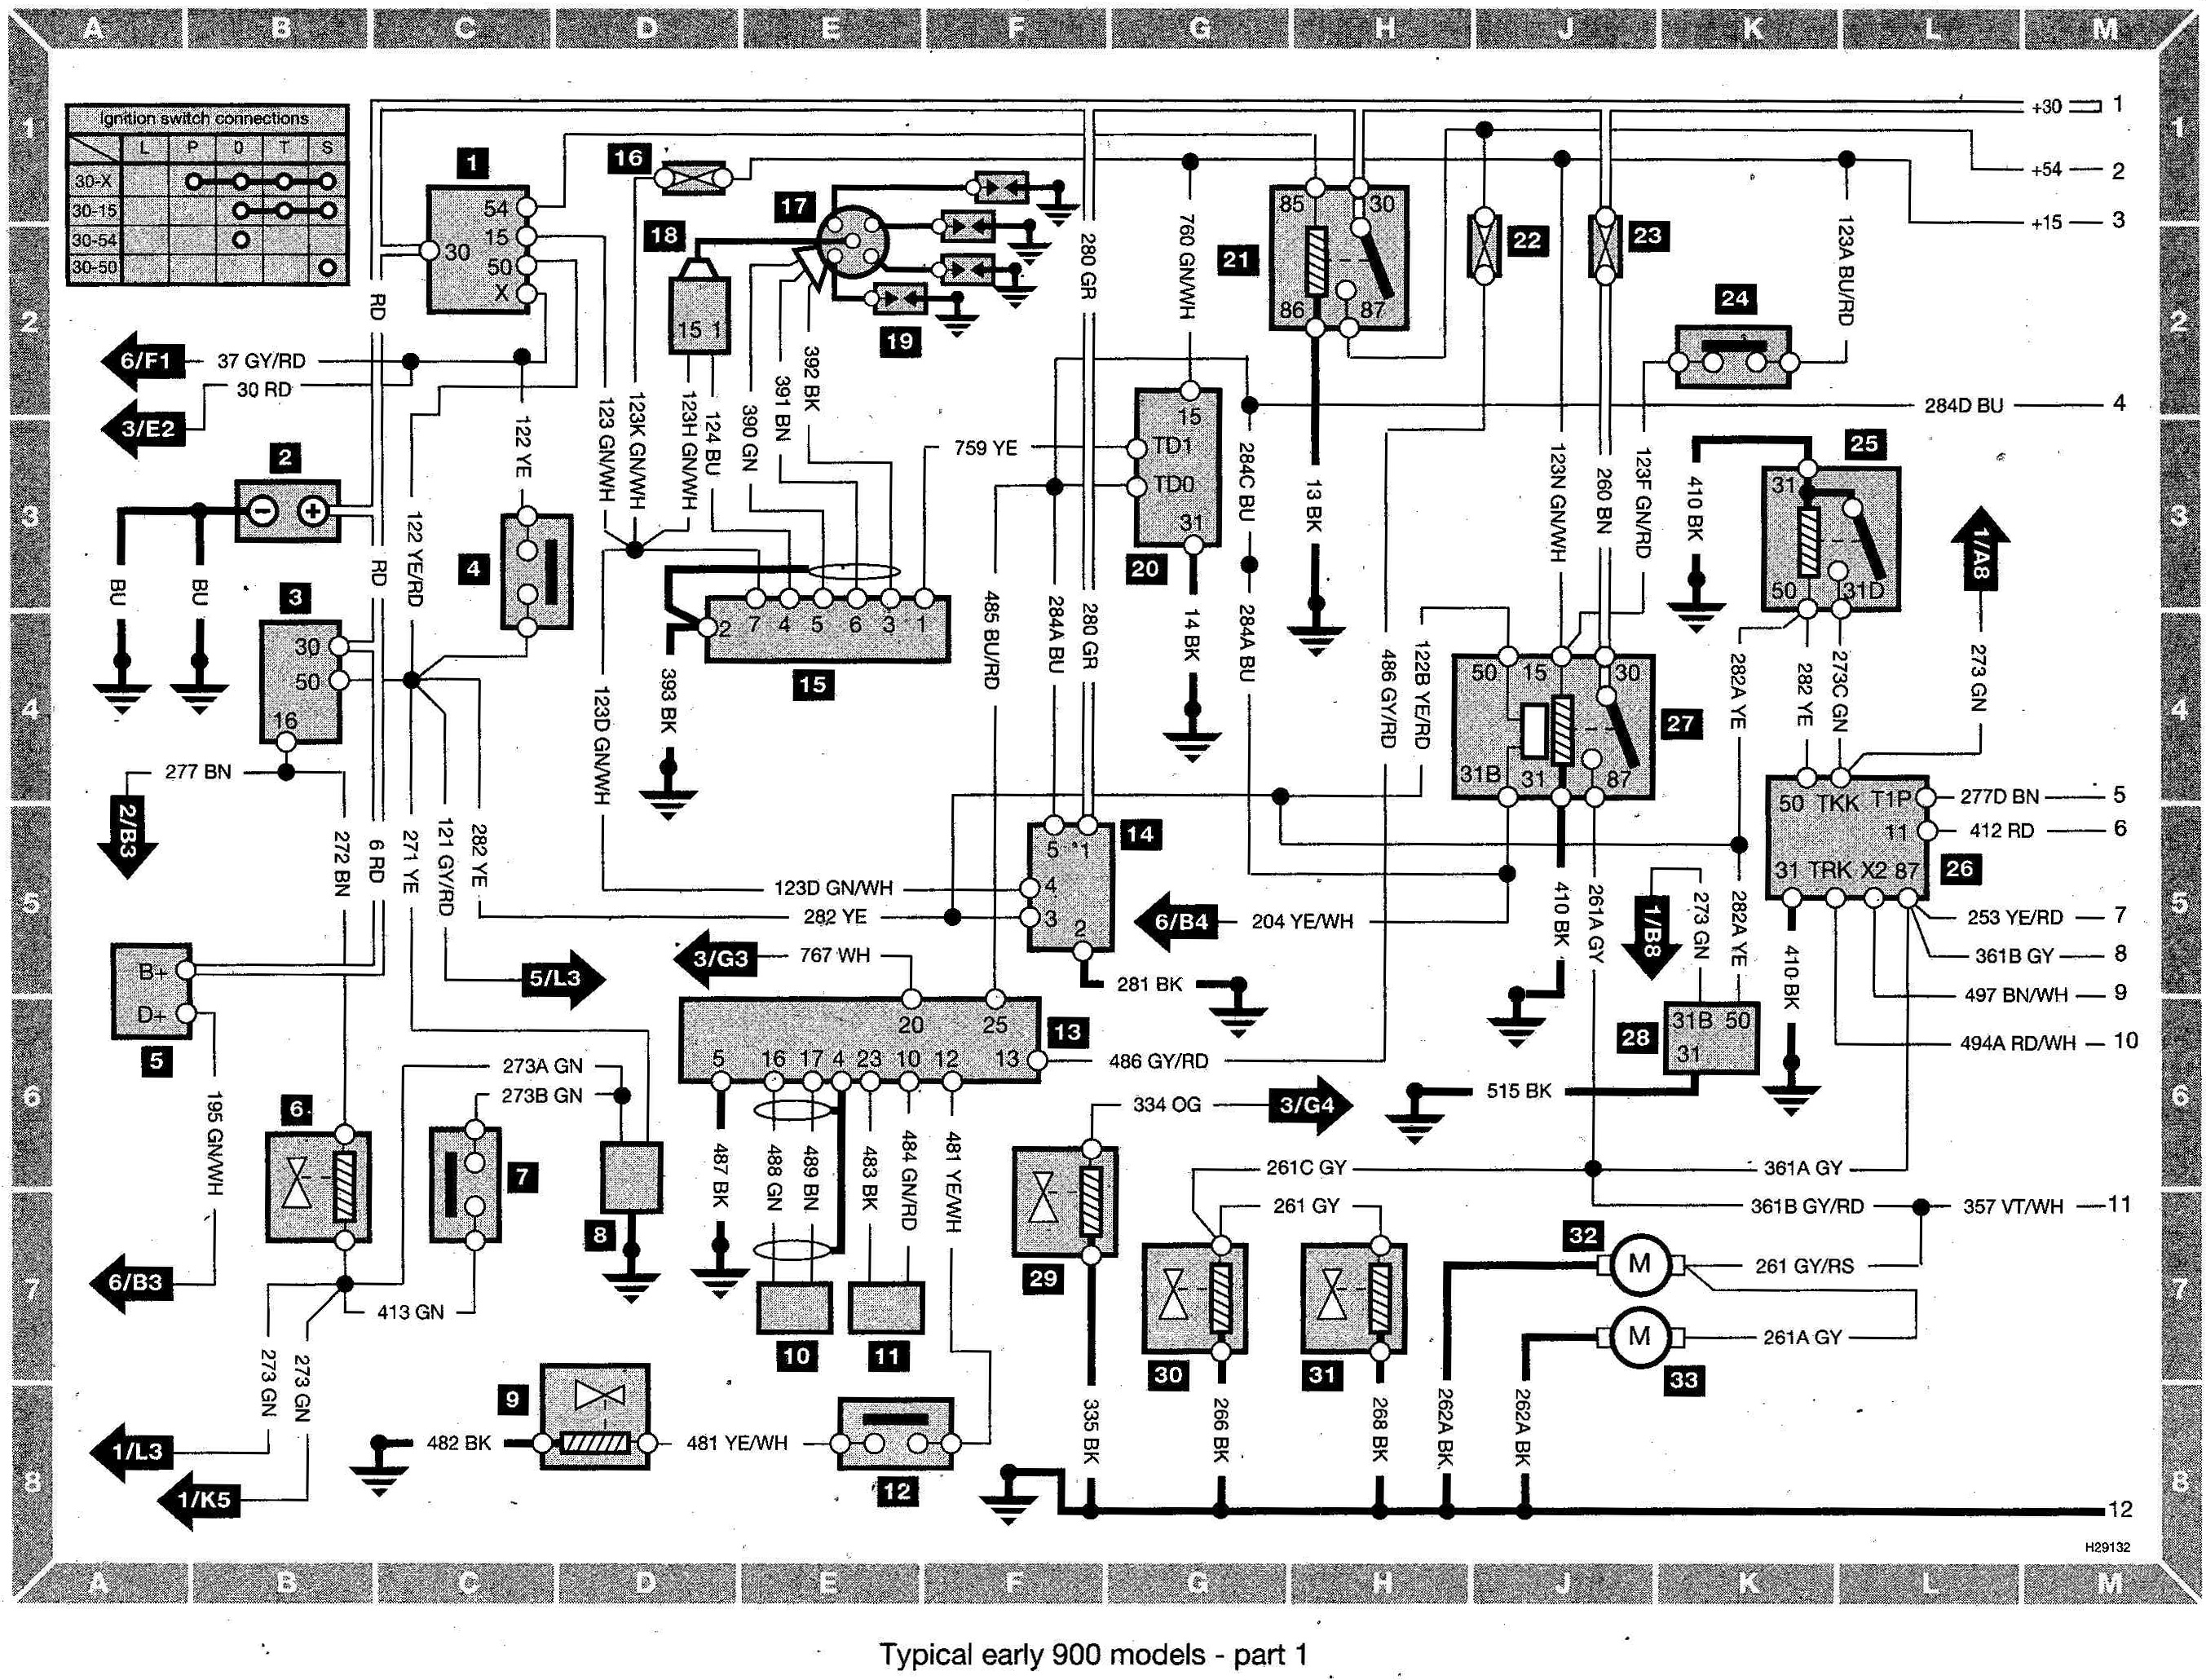 DIAGRAM] 2003 Saab 9 3 Wiring Diagram FULL Version HD Quality Wiring Diagram  - PADDIE-DIAGRAM.JEPIX.FRpaddie-diagram.jepix.fr